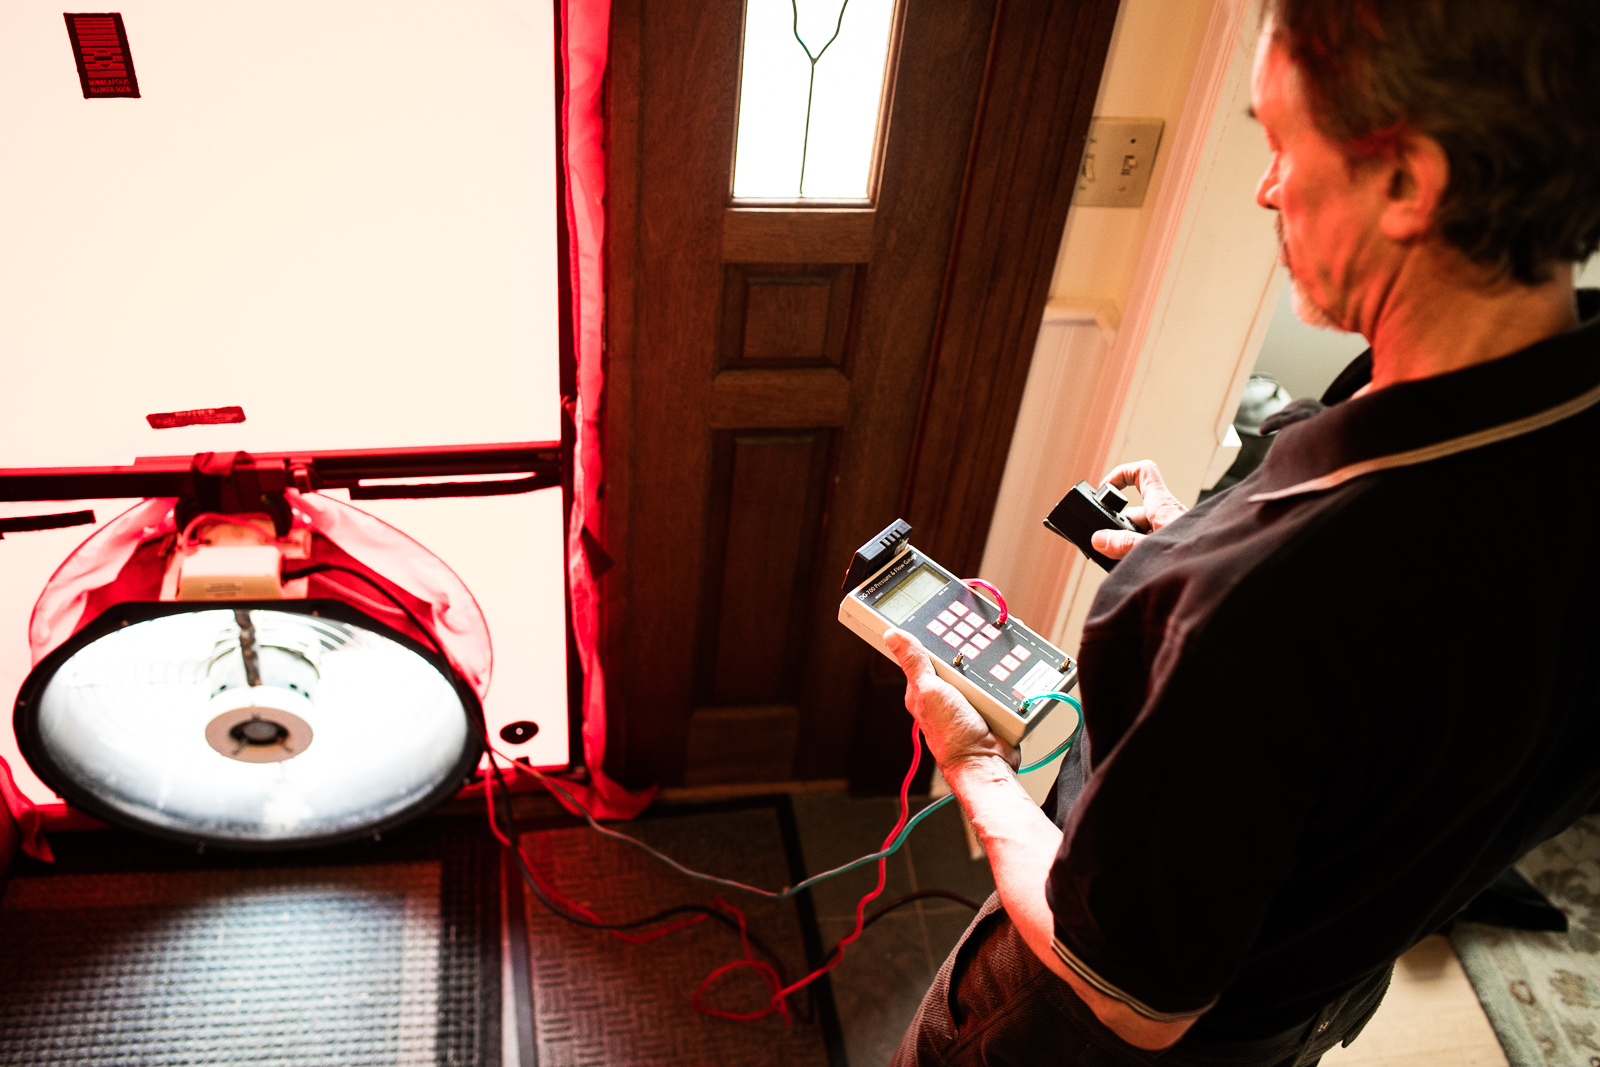 A contracter performs a home energy efficiency audit for a couple in Richmond, Vermont. by Reciprocity Studio photographers for Efficiency Vermont